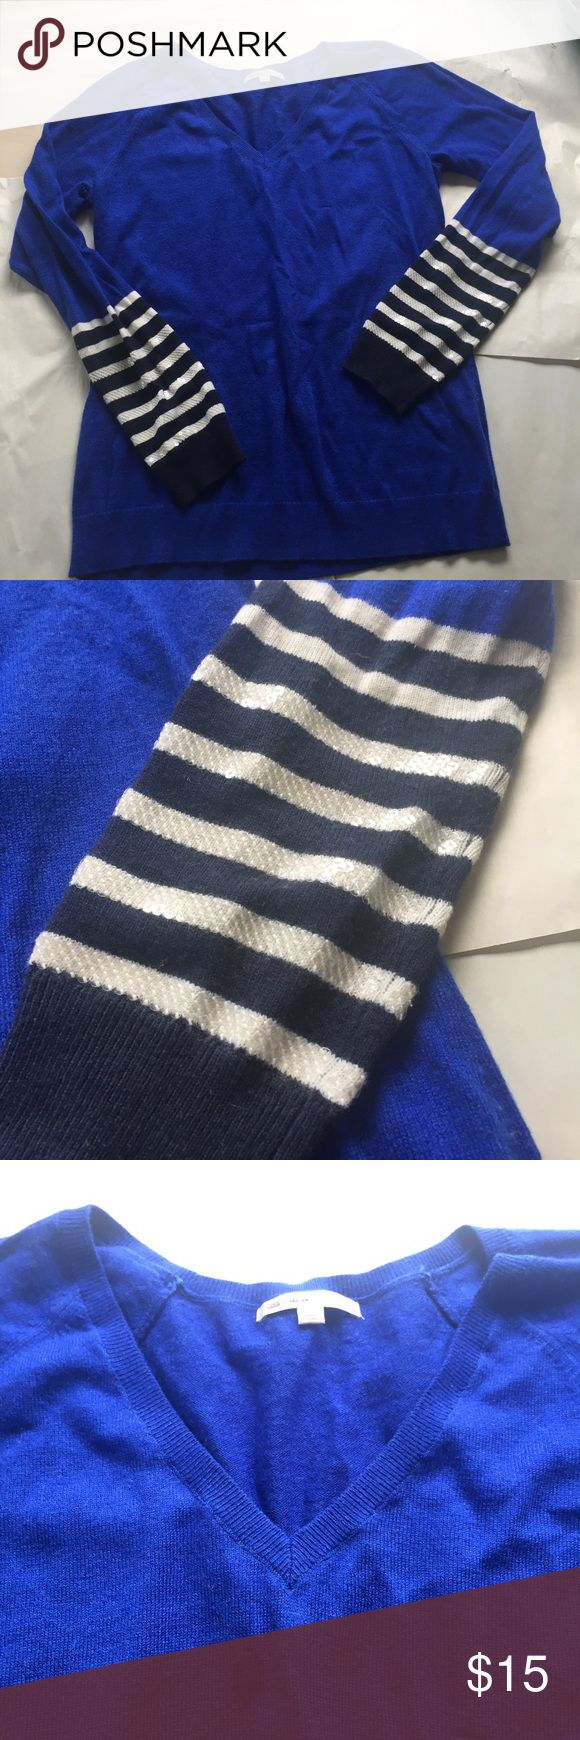 GAP Blue and White Sweater with Sequin Details Gorgeous royal blue colored GAP sweater with a flattering v neck. The sleeve cuffs are white and navy blue stripes. The white stripes have really nice white sequins on the white stripes. 57% nylon, 28% wool, and 15% acrylic. GAP Sweaters V-Necks